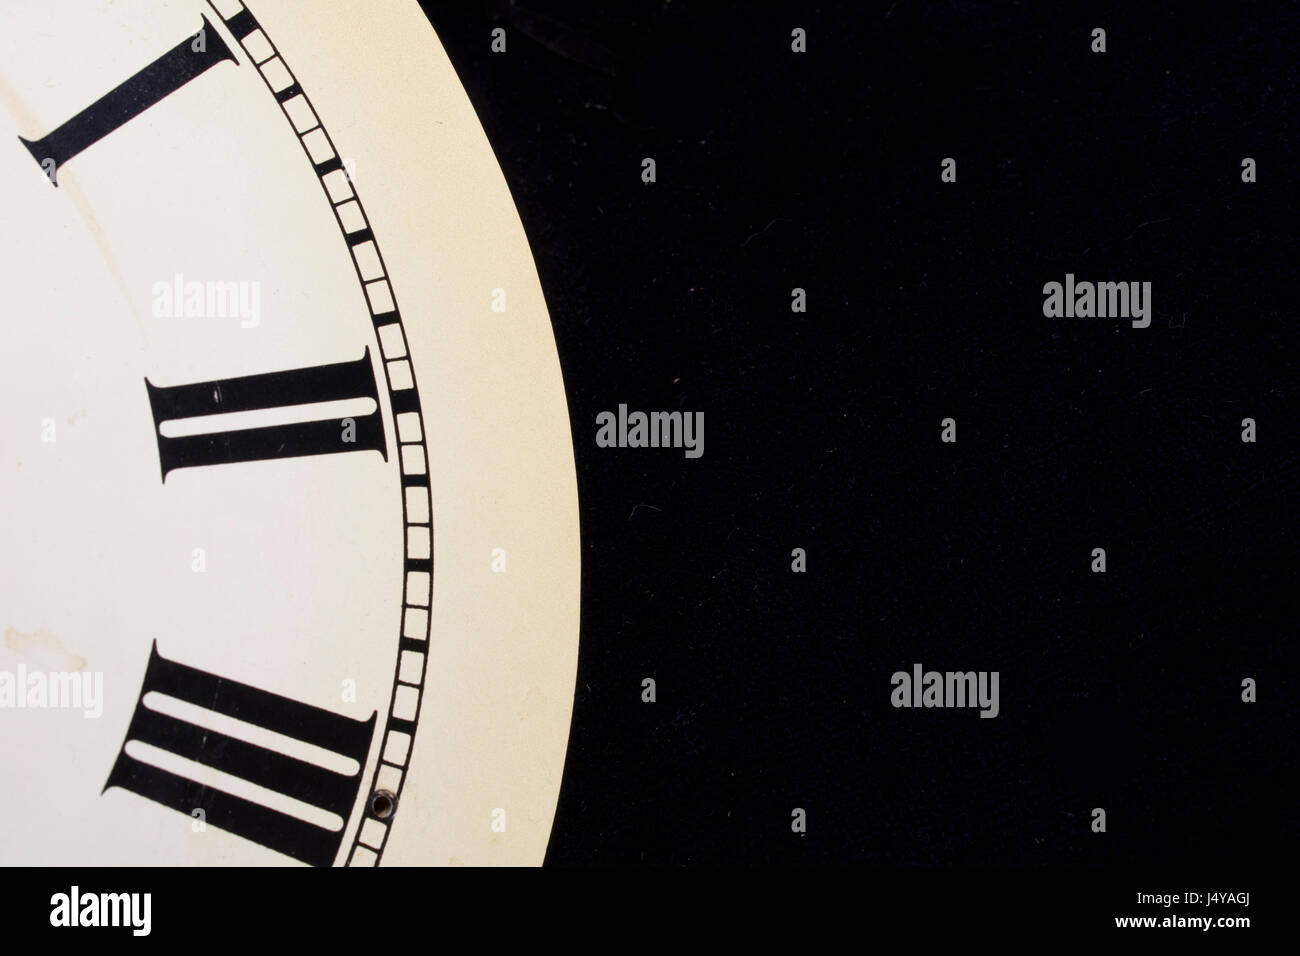 Close Up Of Roman Numeral Clock Face Stock Photo